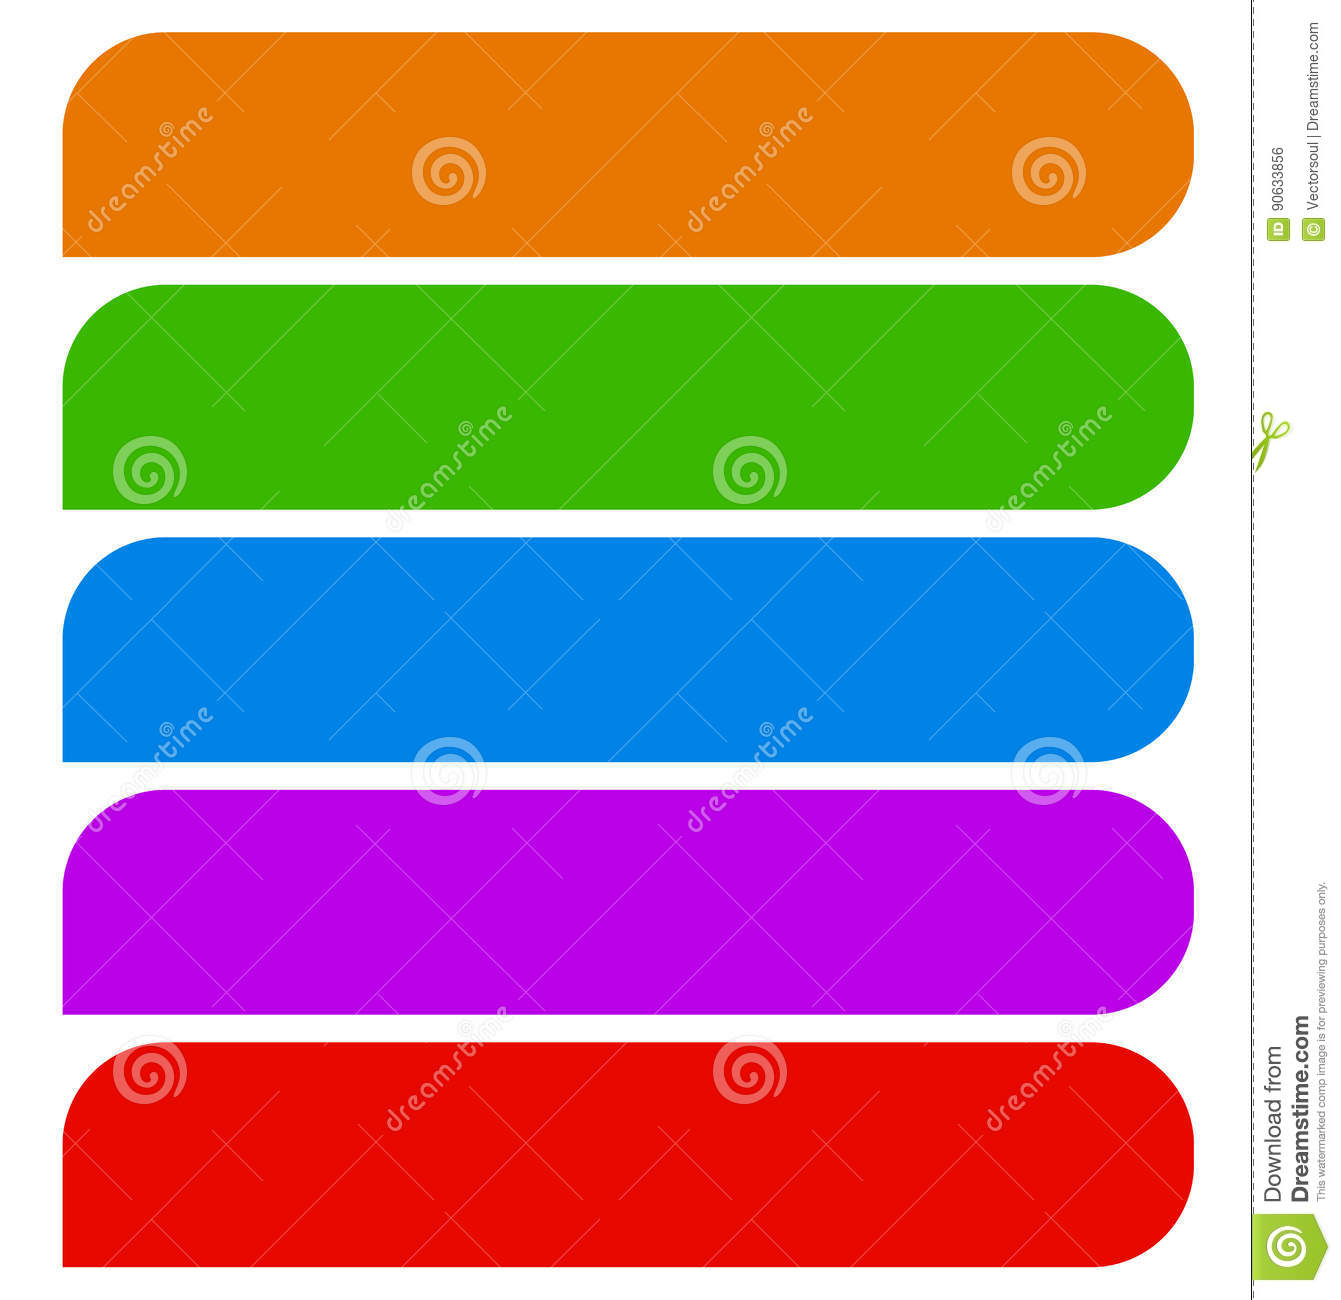 simple button or banner shapes background in 5 matching color